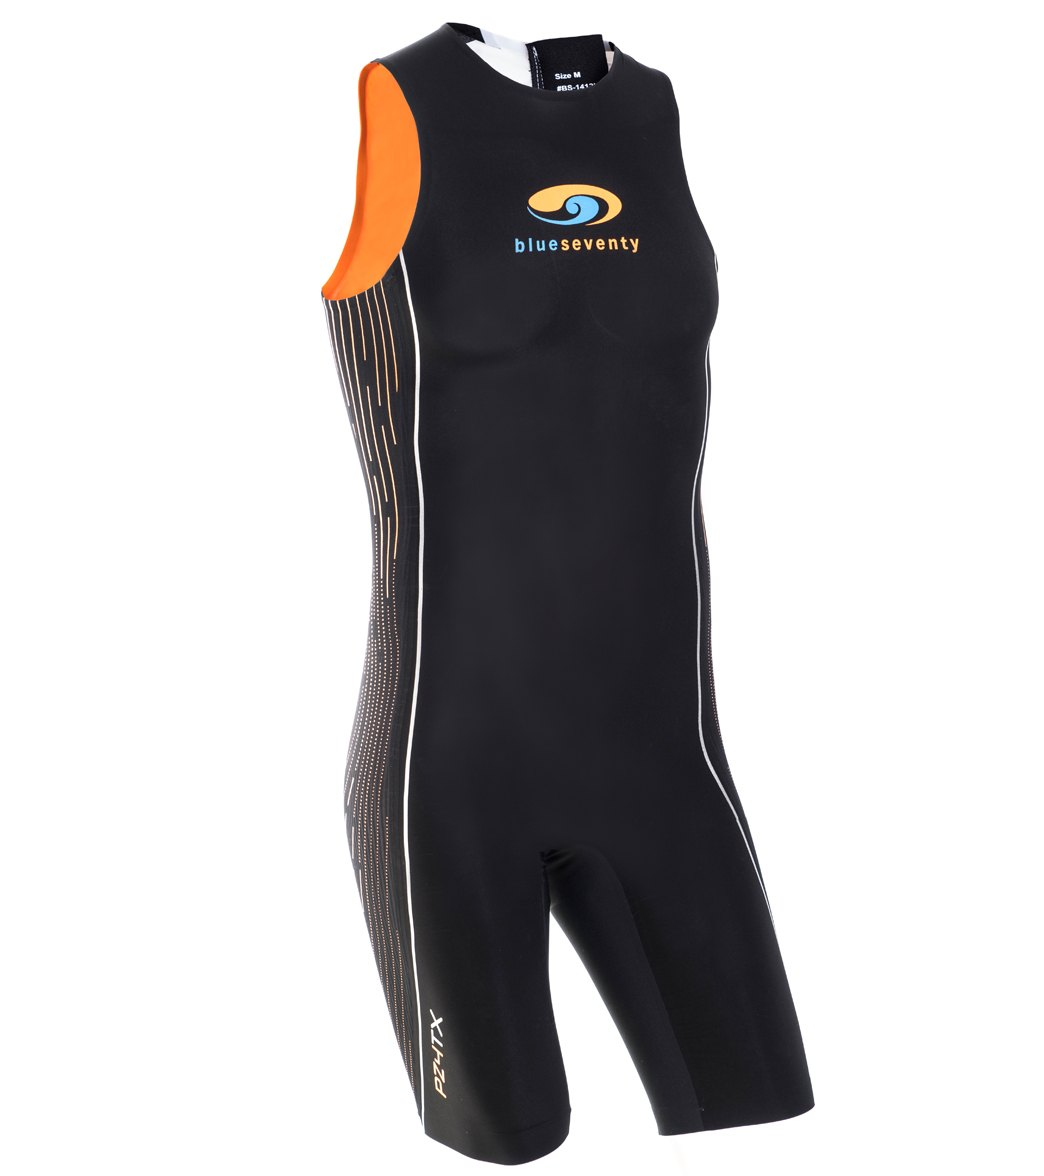 a1e4eca0df Blueseventy Men's PZ4TX Swimskin at SwimOutlet.com - Free Shipping